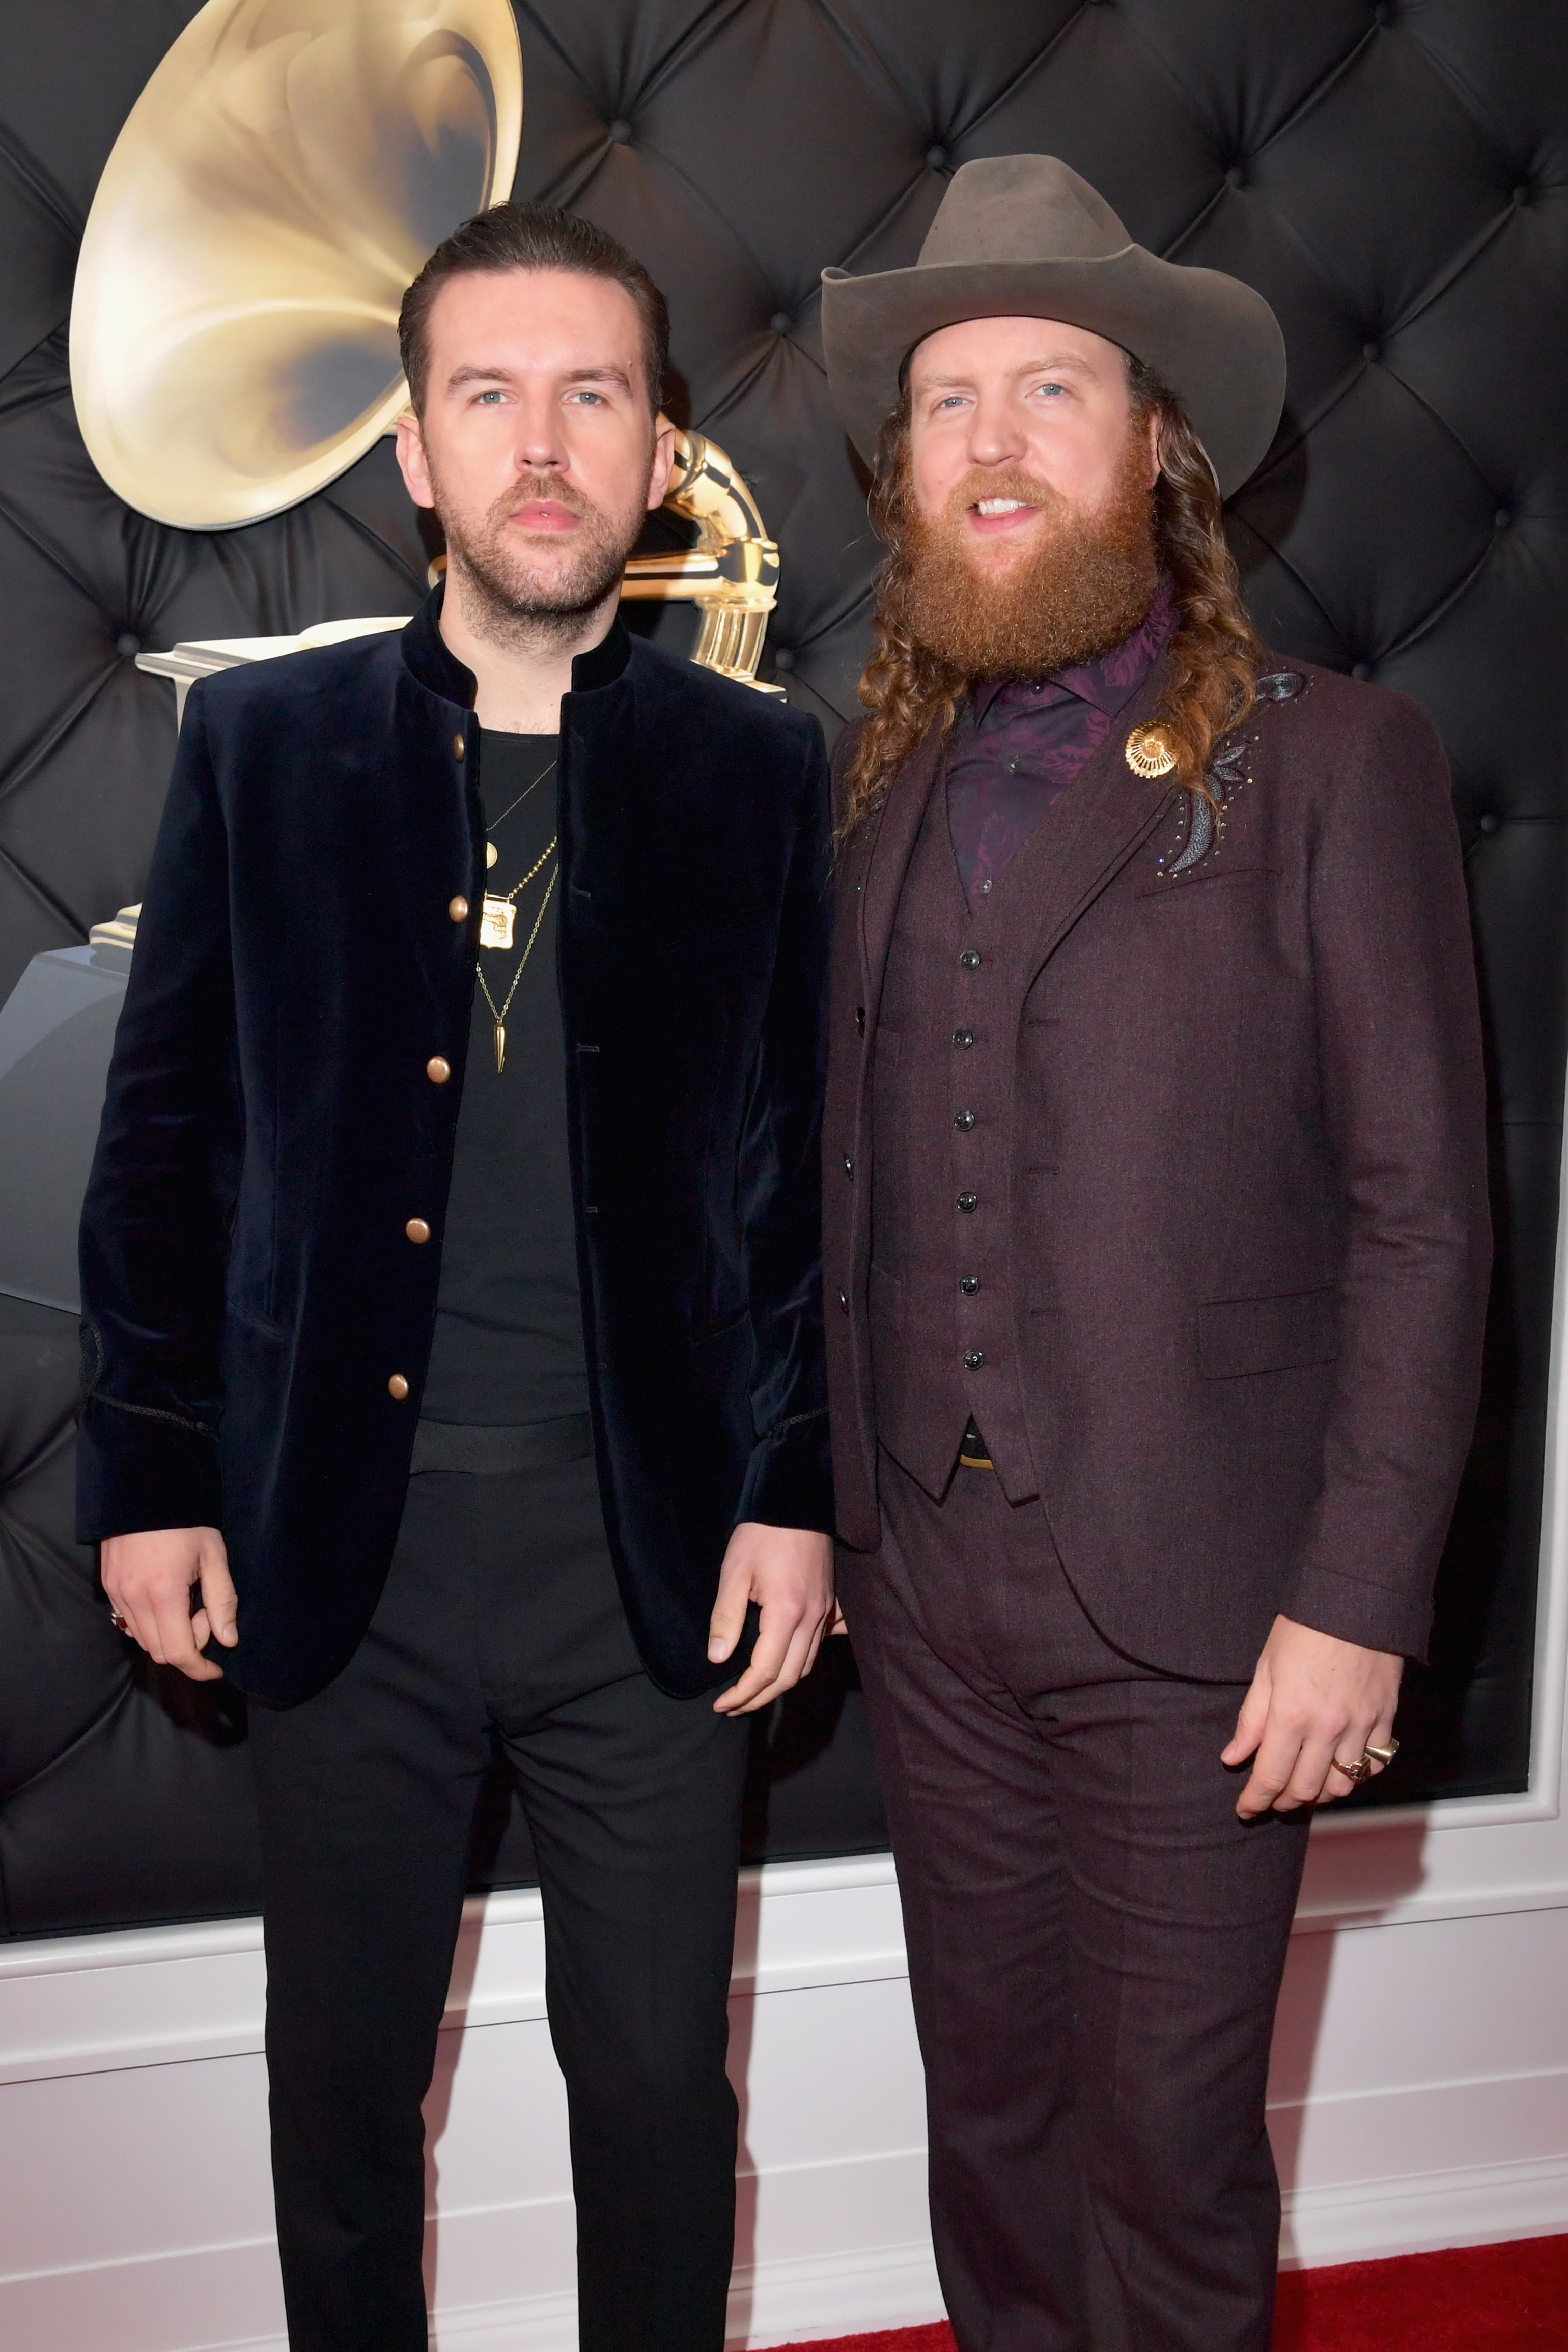 LOS ANGELES, CA - FEBRUARY 10: (L-R) T.J. Osborne and John Osborne of Brothers Osborne attend the 61st Annual GRAMMY Awards at Staples Center on February 10, 2019 in Los Angeles, California. (Photo by Lester Cohen/Getty Images for The Recording Academy)